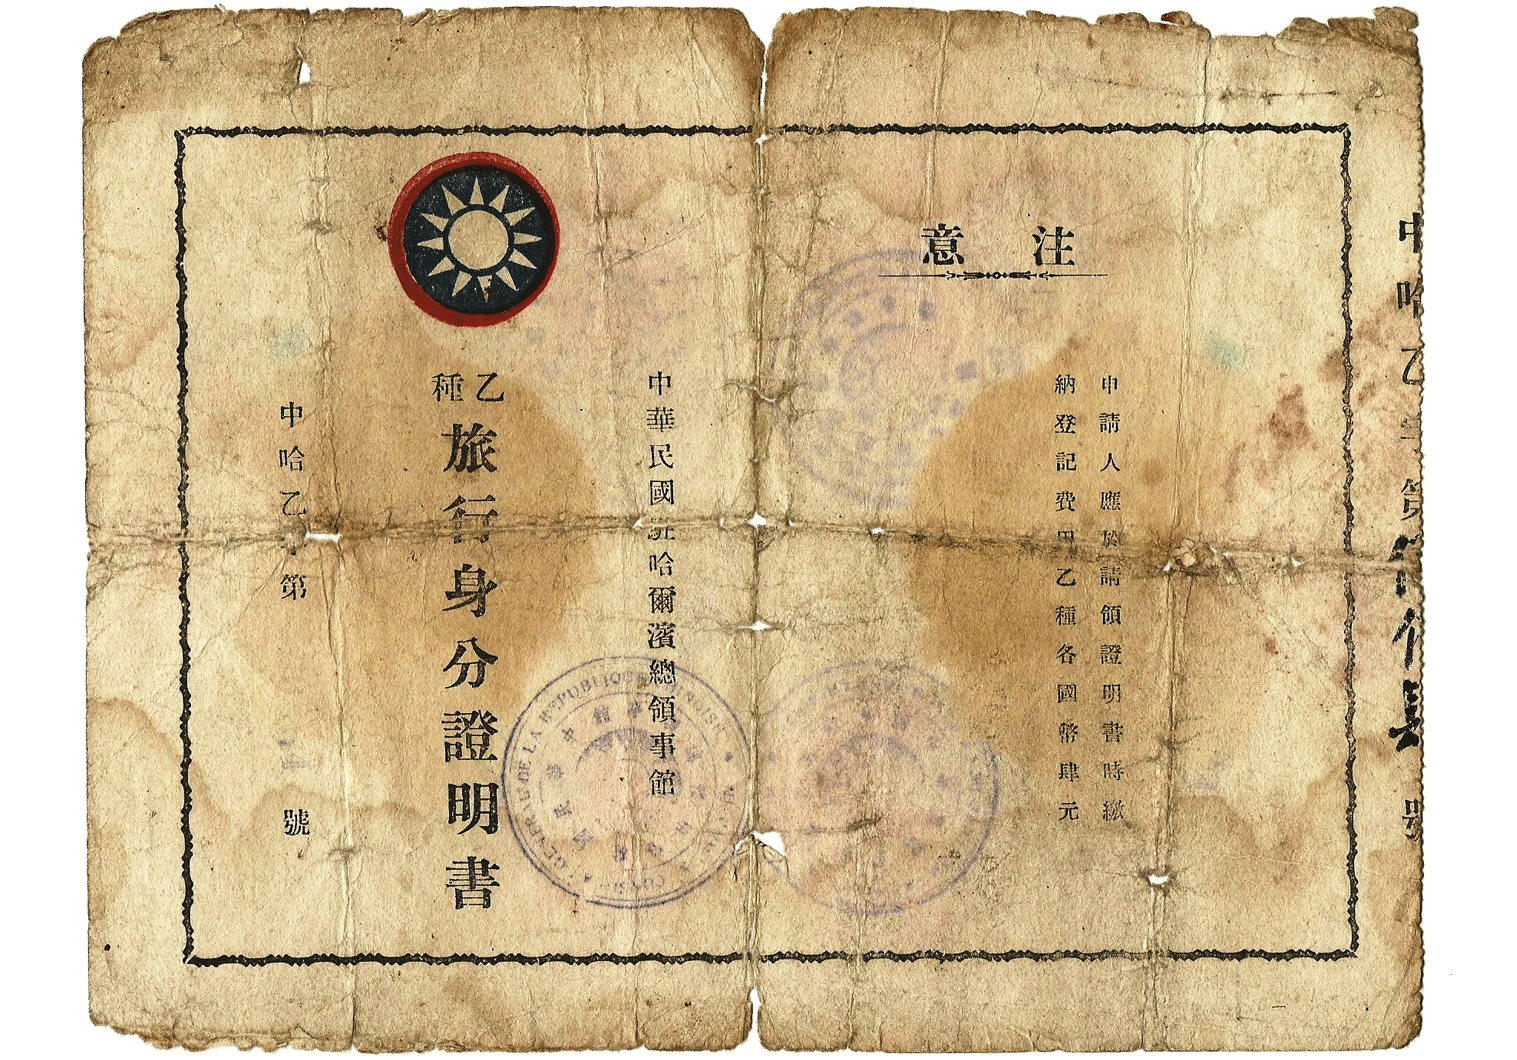 WW2 Chinese travel document